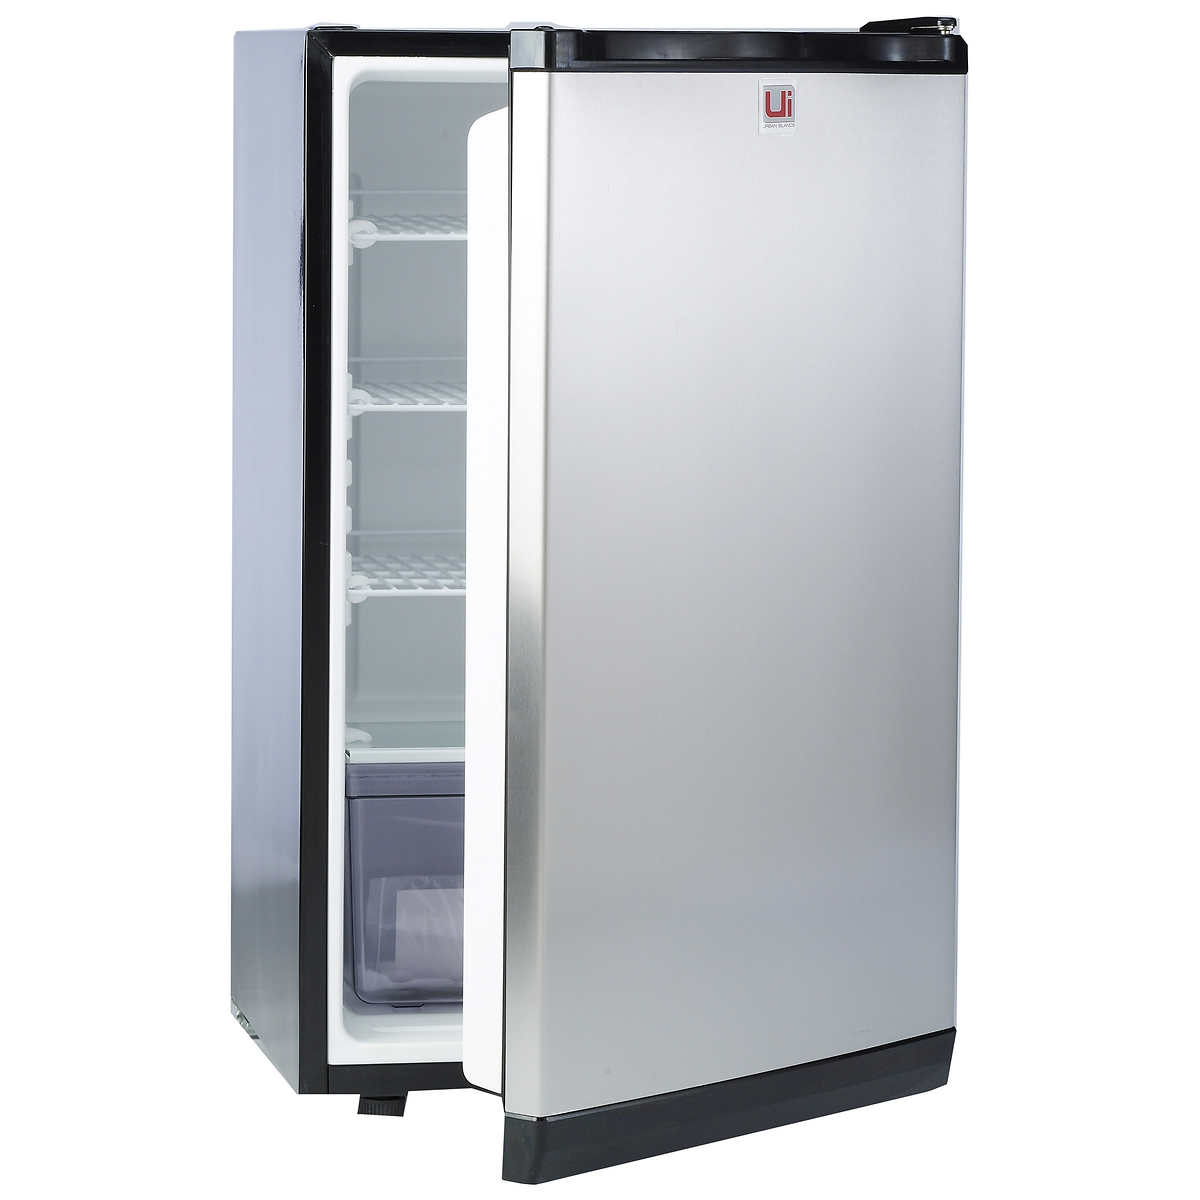 Urban Islands 4 5 Cu Ft Stainless Steel Refrigerator By Bull Outdoor Products